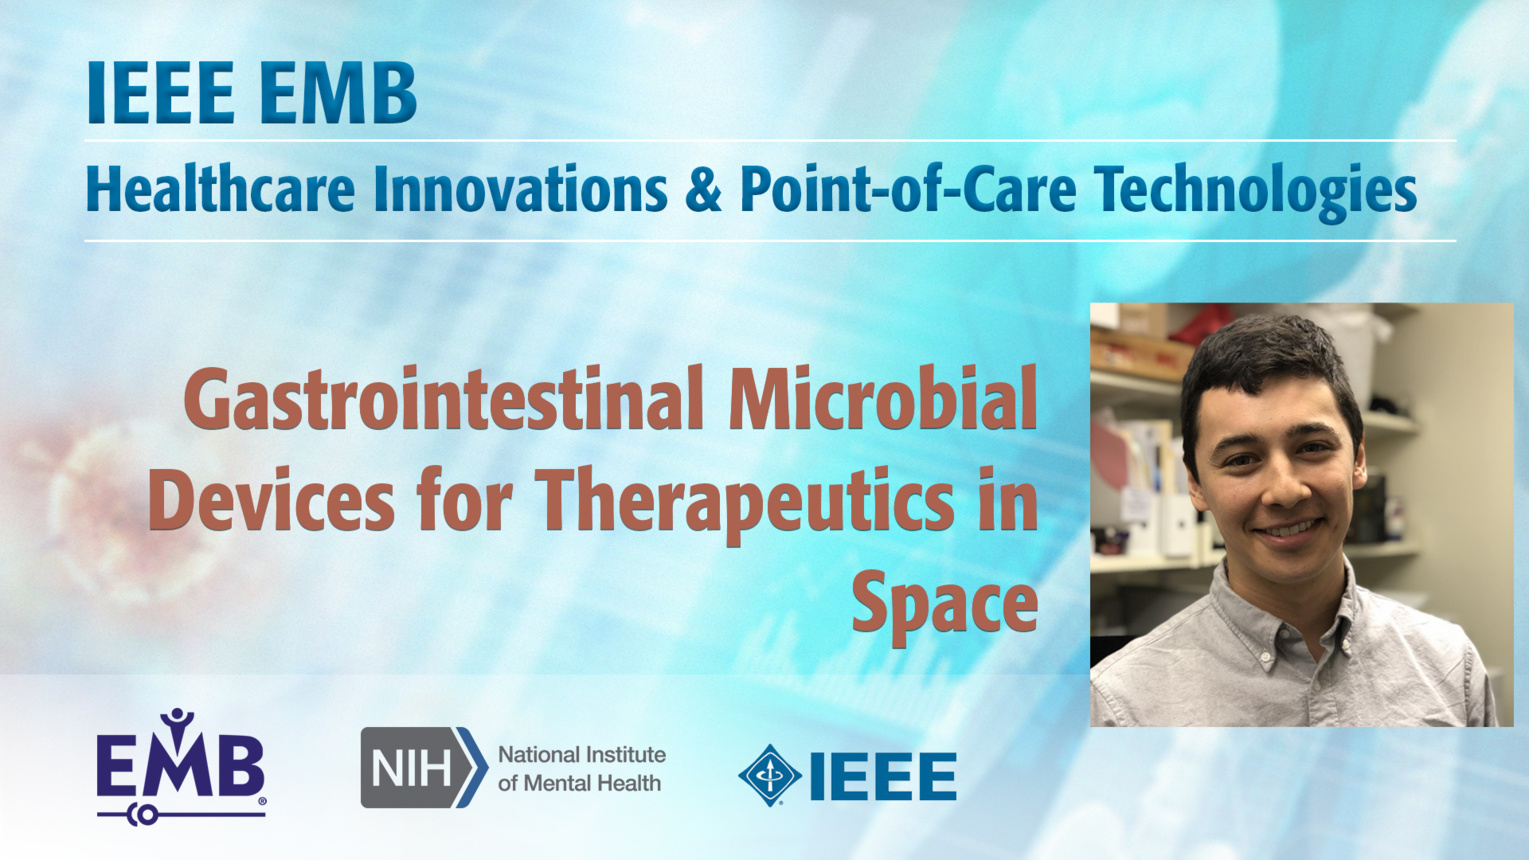 Gastrointestinal Microbial Devices for Therapeutics in Space - Miguel Jimenez - IEEE EMBS at NIH, 2019